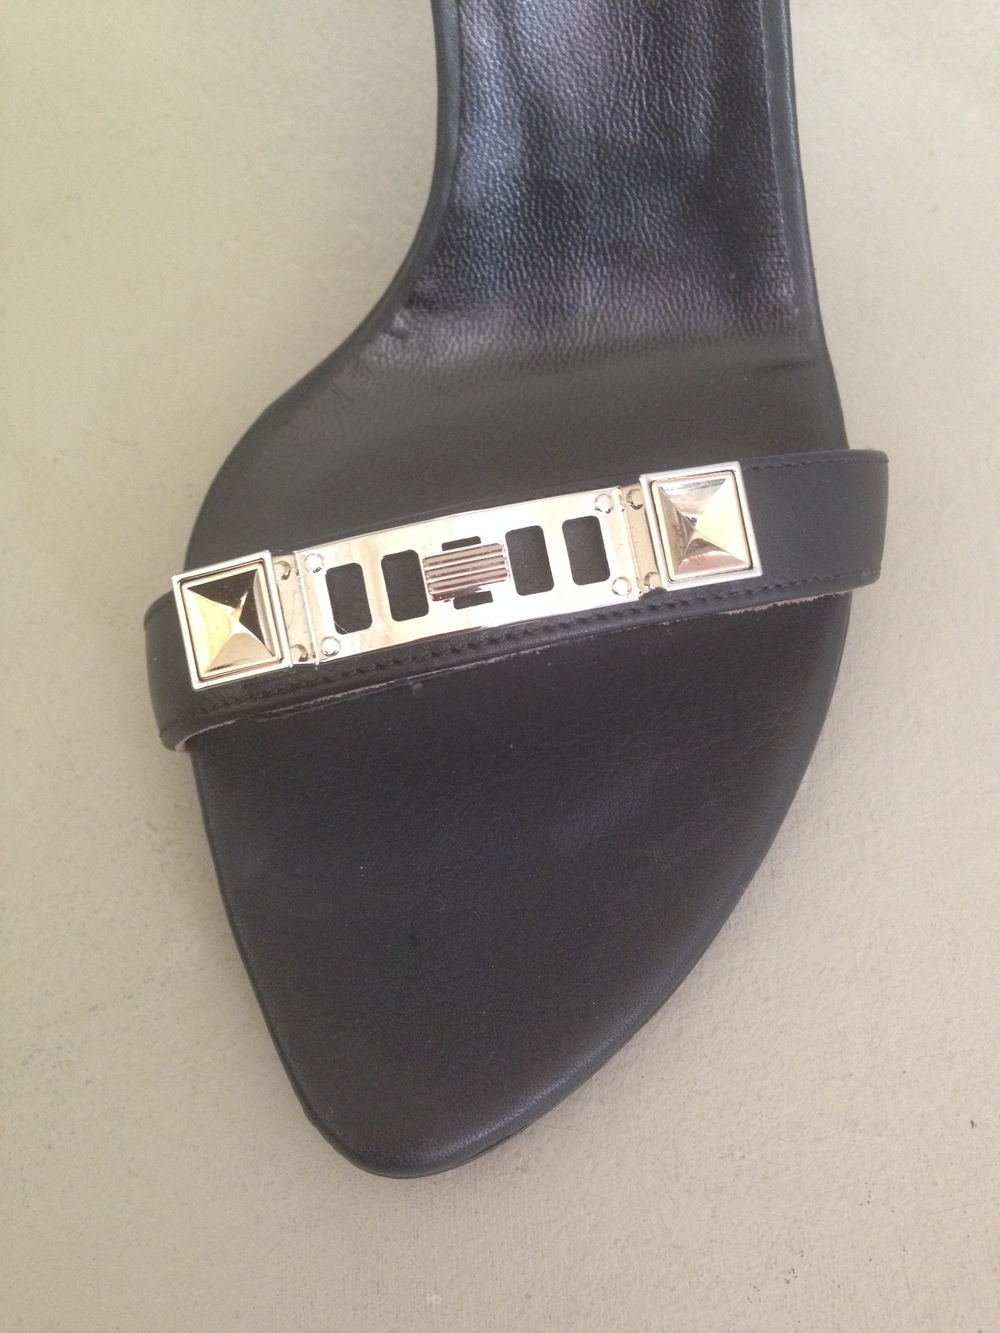 Proenza Schouler PS1 Leather Ankle-Strap Sandal, $595.Onsale for $417.I love the toe shape and the hardware!